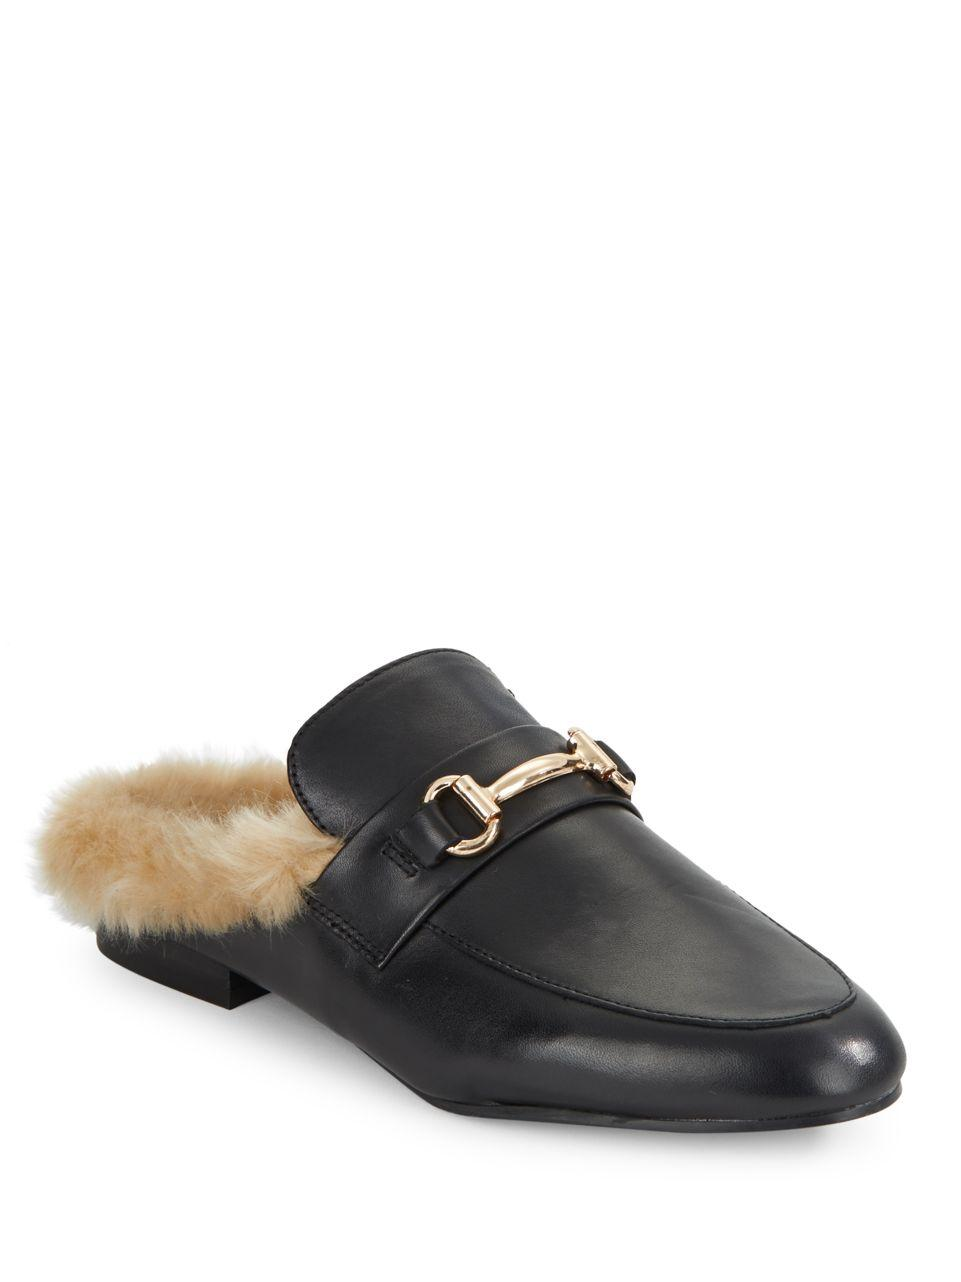 Lyst Steve Madden Jill Leather And Faux Fur Mules In Black